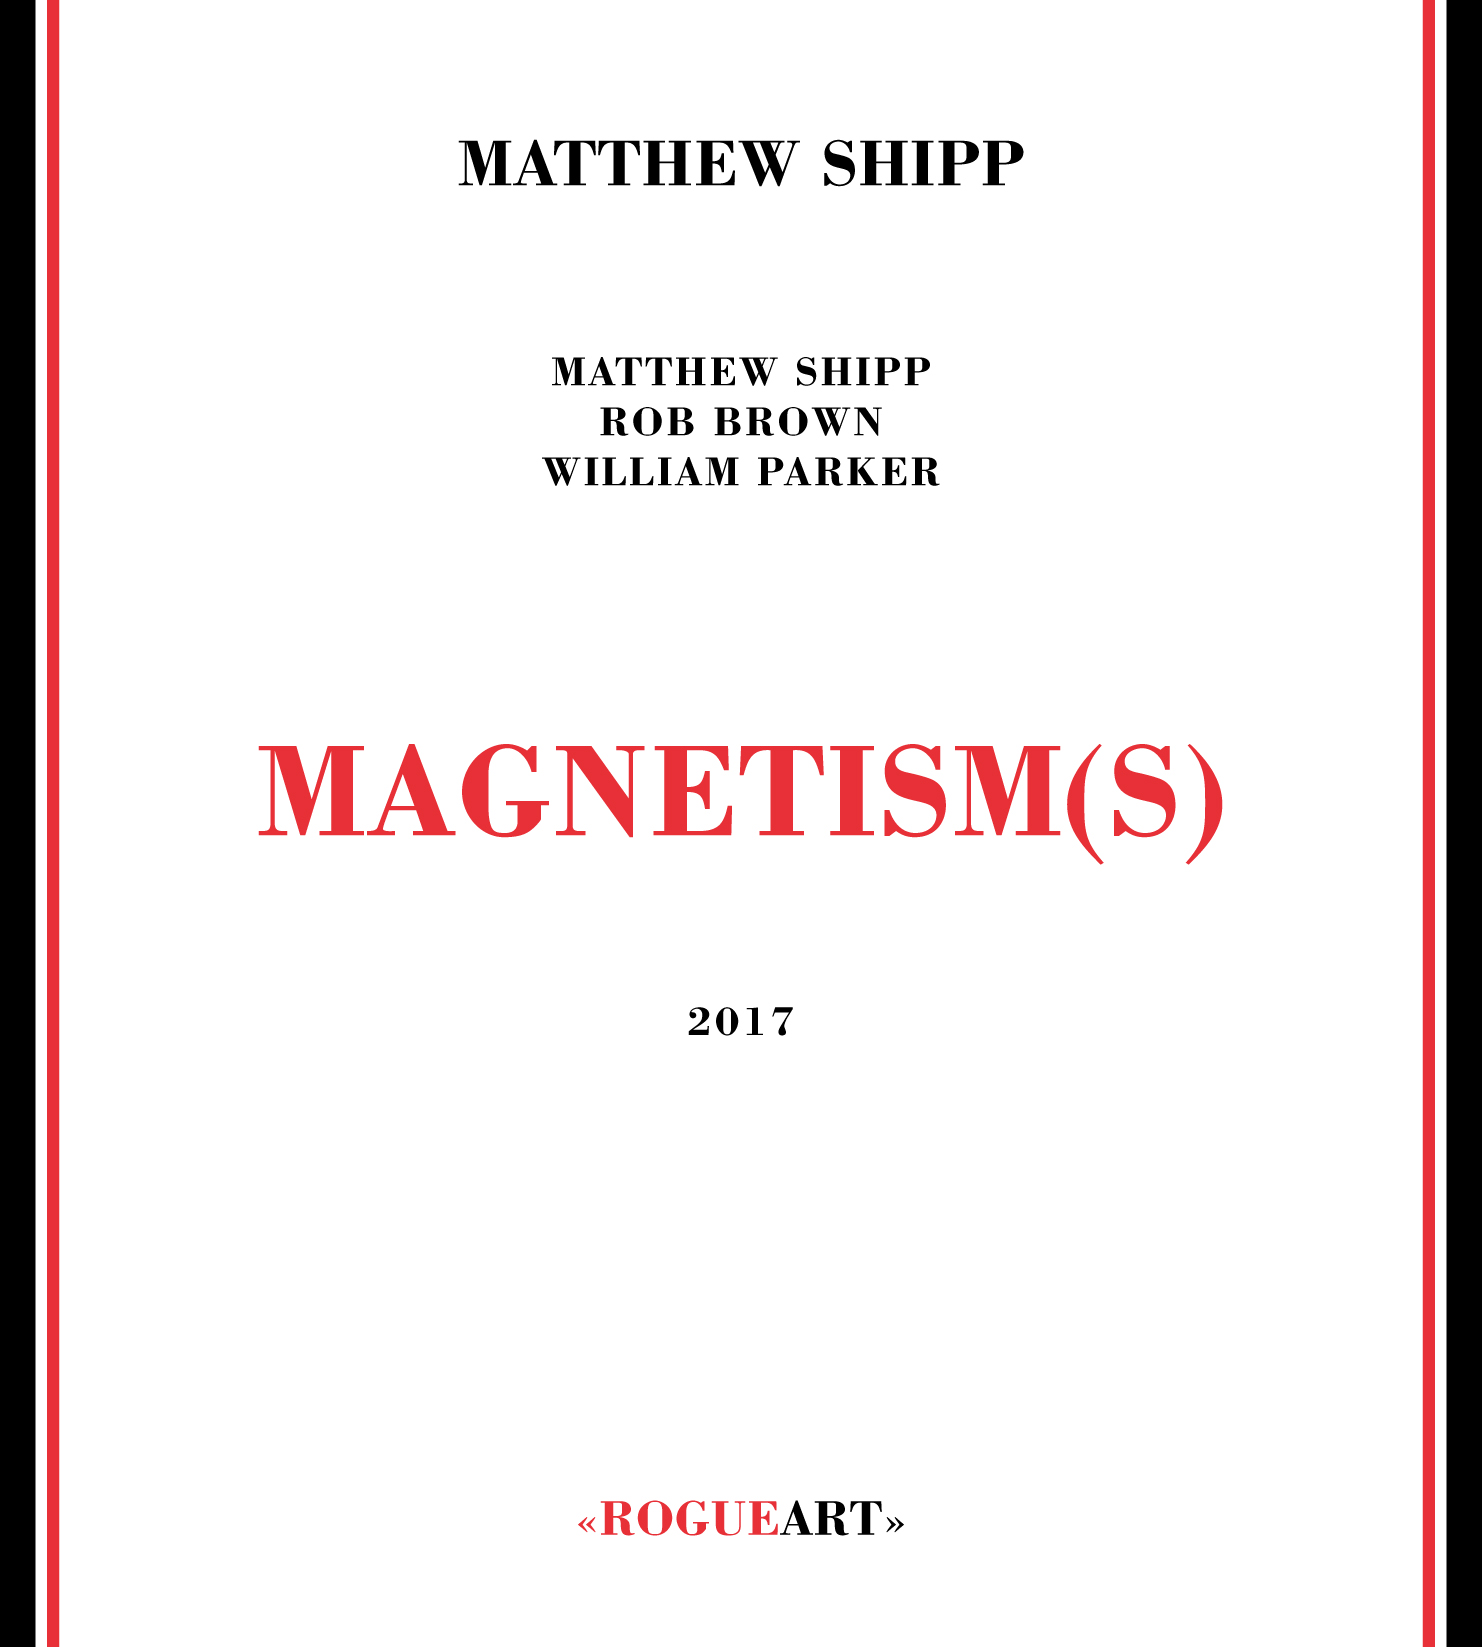 Front cover of the album MAGNETISM(S)